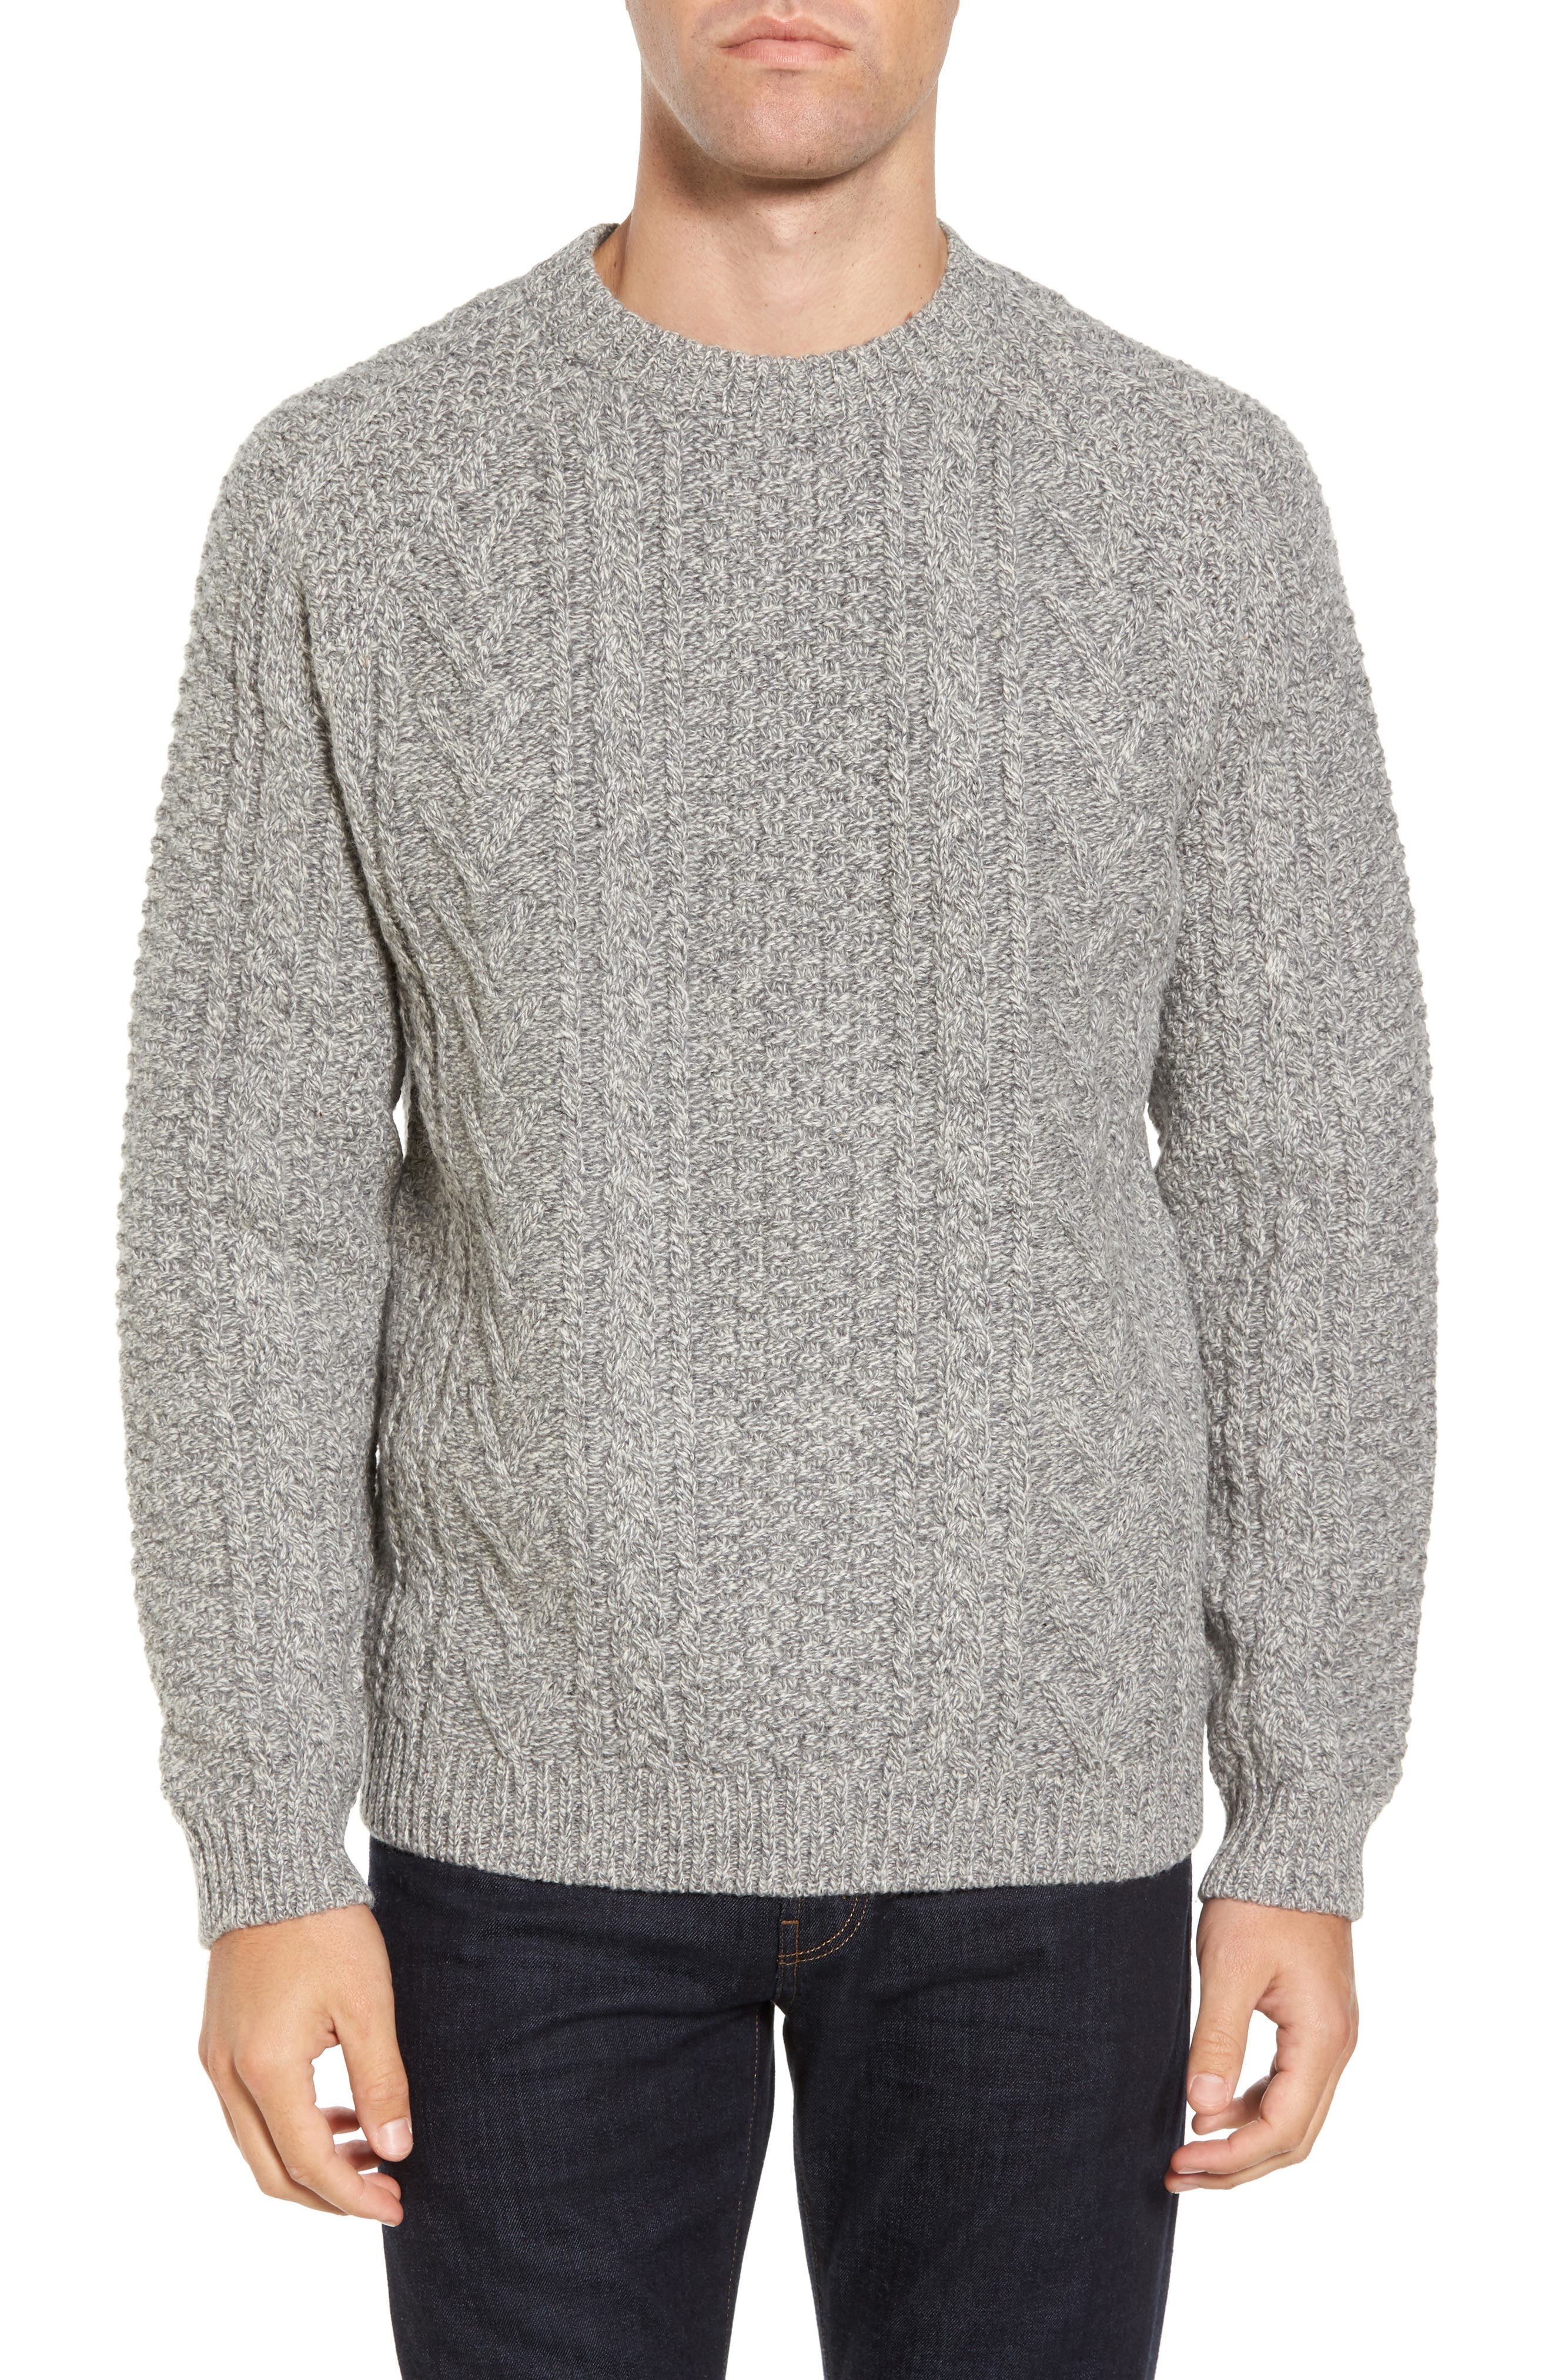 Fisherman Knit Wool Blend Sweater,                         Main,                         color,